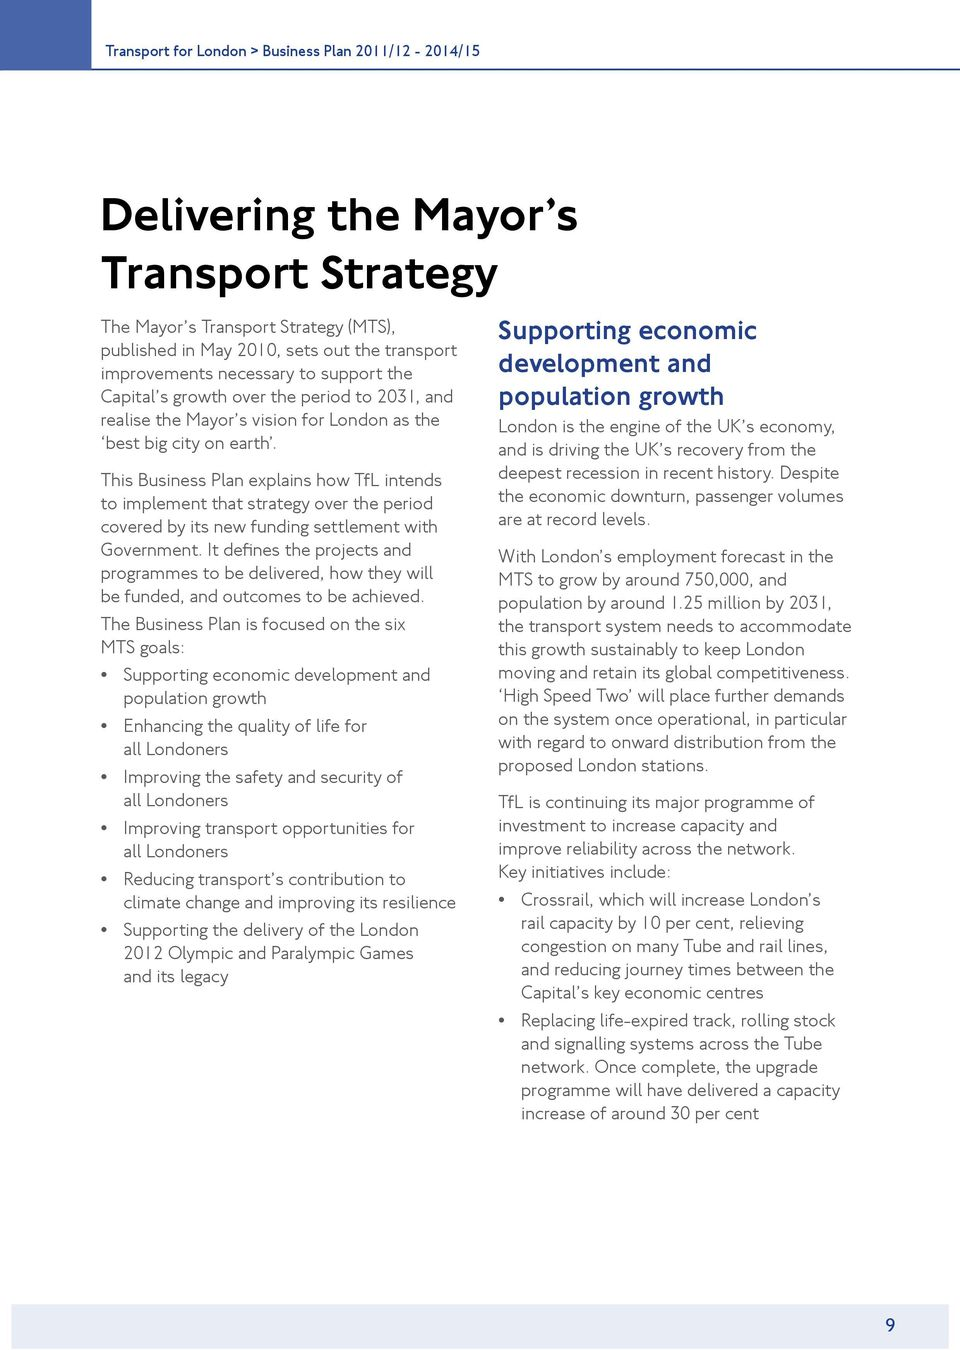 This Business Plan explains how TfL intends to implement that strategy over the period covered by its new funding settlement with Government.